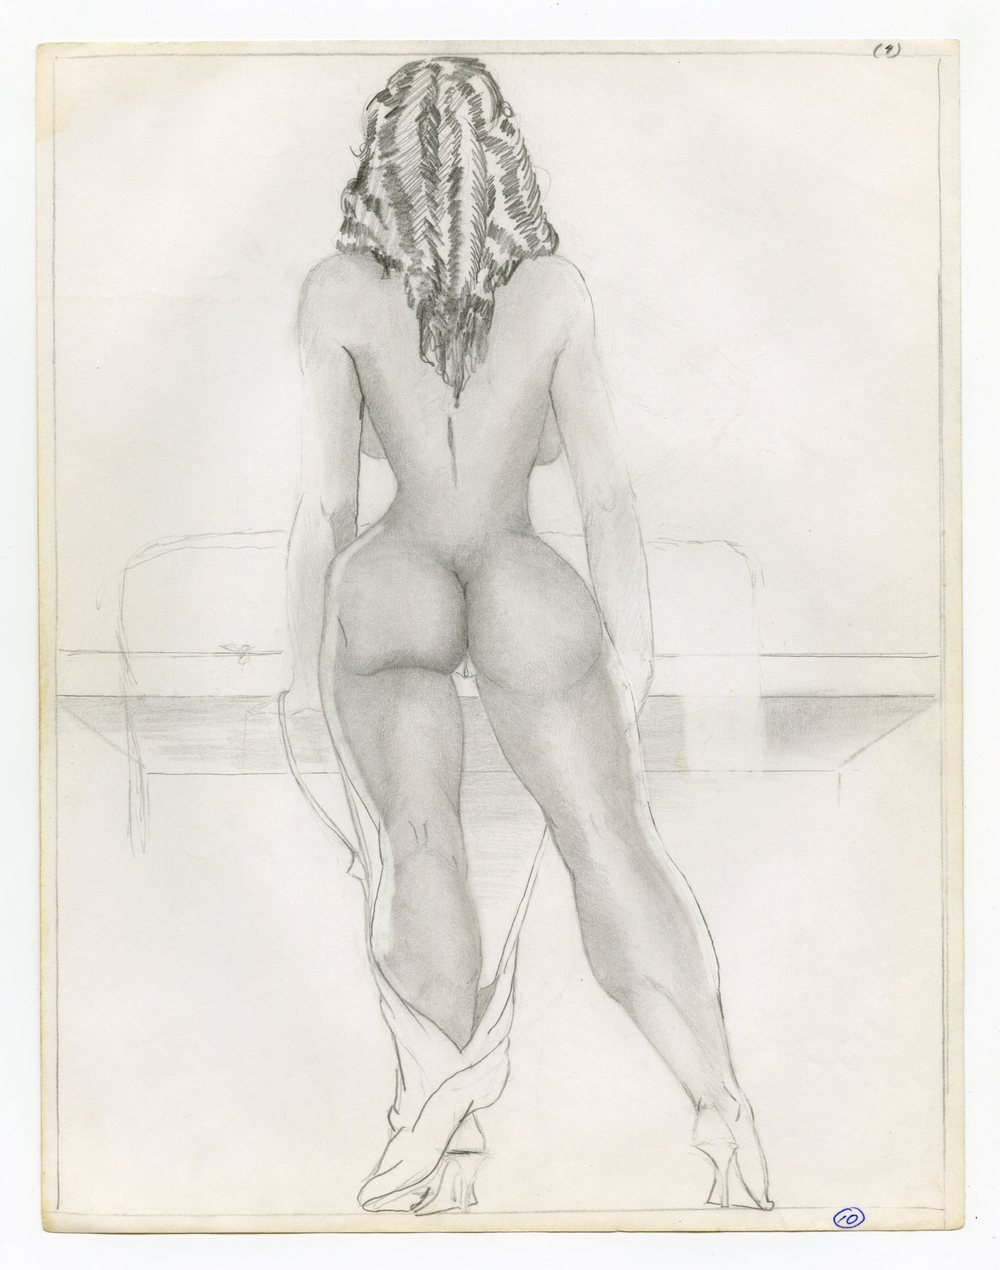 William Crawford  Untitled, Circa 1997  Graphite on paper  11 x 8.5 inches